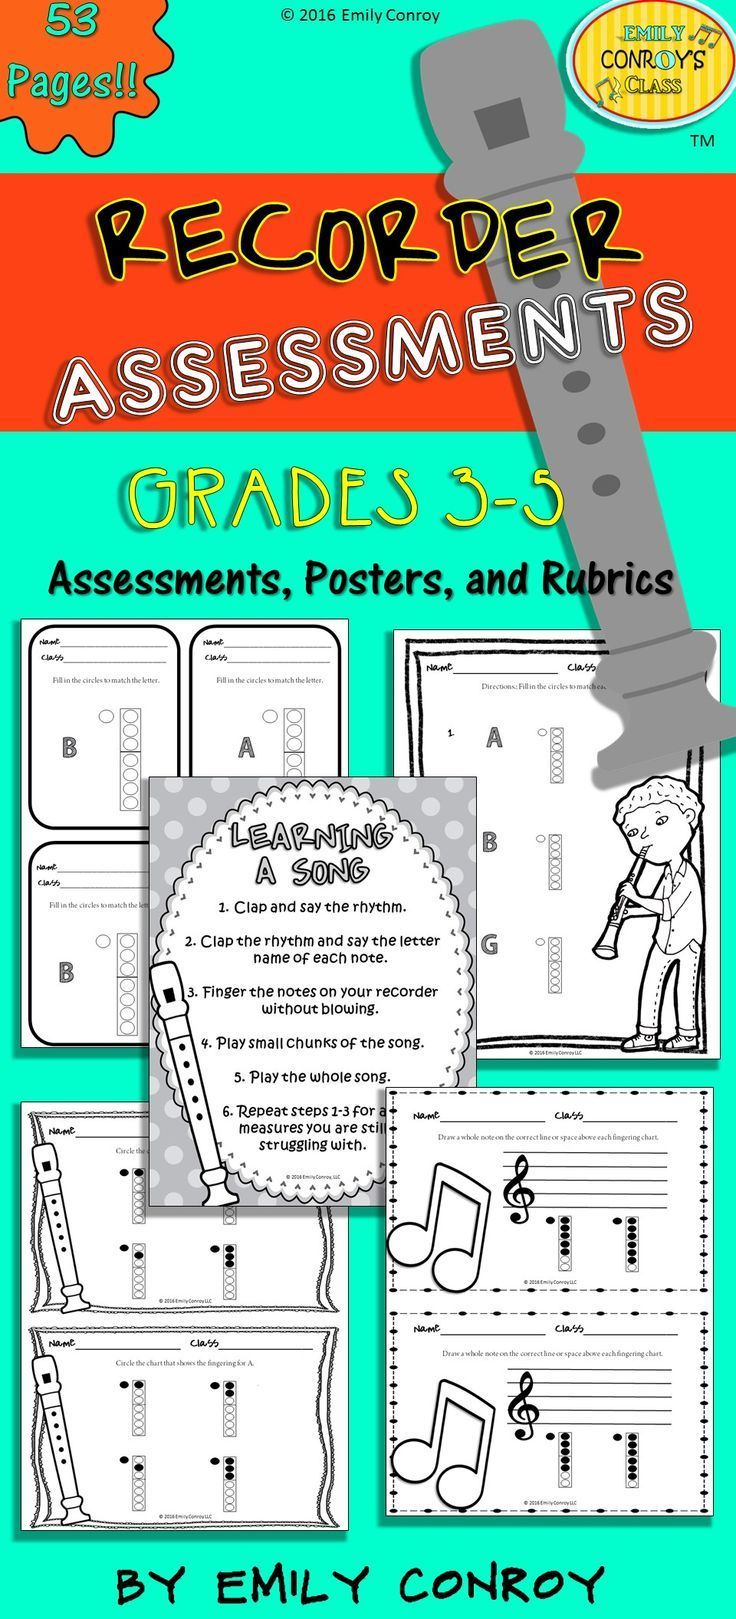 Recorder Assessments for elementary music includes assessments, posters, and a rubric to aid teachers in evaluating student understanding of how to finger and play the recorder.